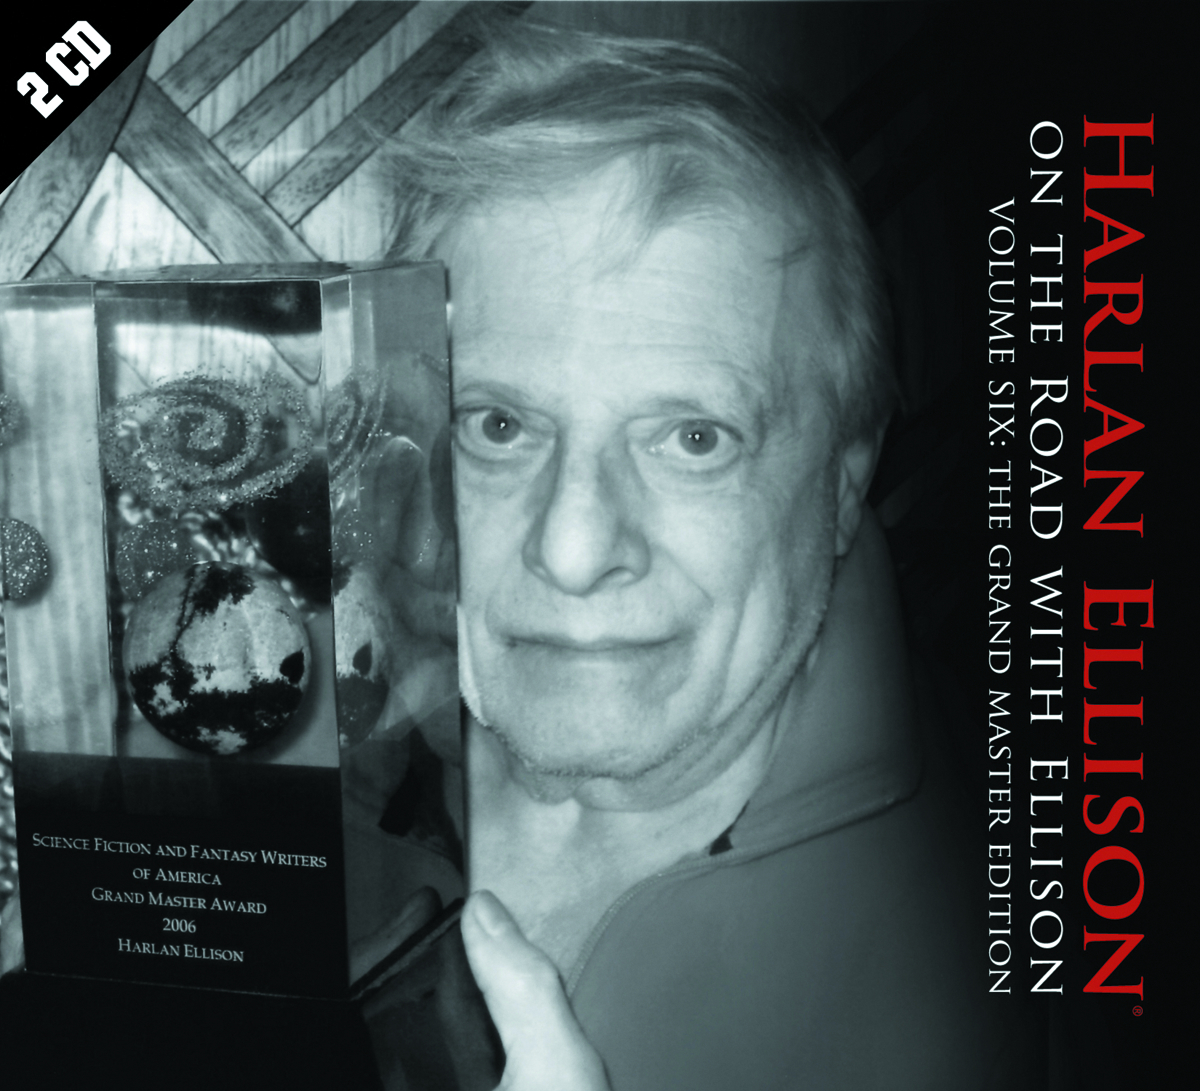 ON THE ROAD WITH HARLAN ELLISON CD VOL 06